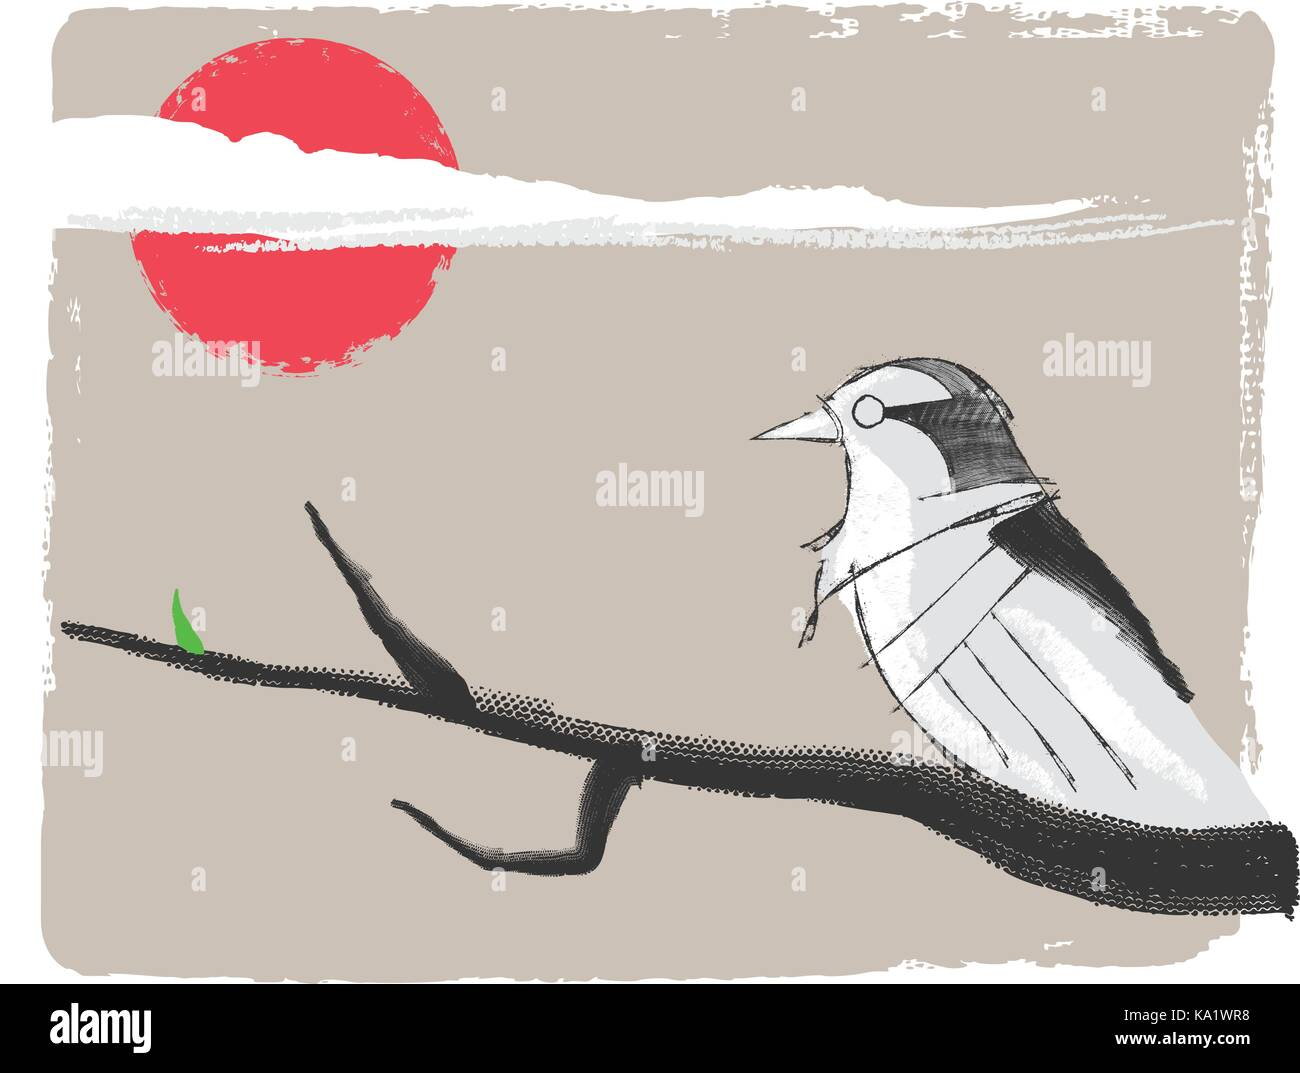 Hand drawn vector illustration or watercolor ink drawing of a bird on a branch in oriental style with sketch look - Stock Image